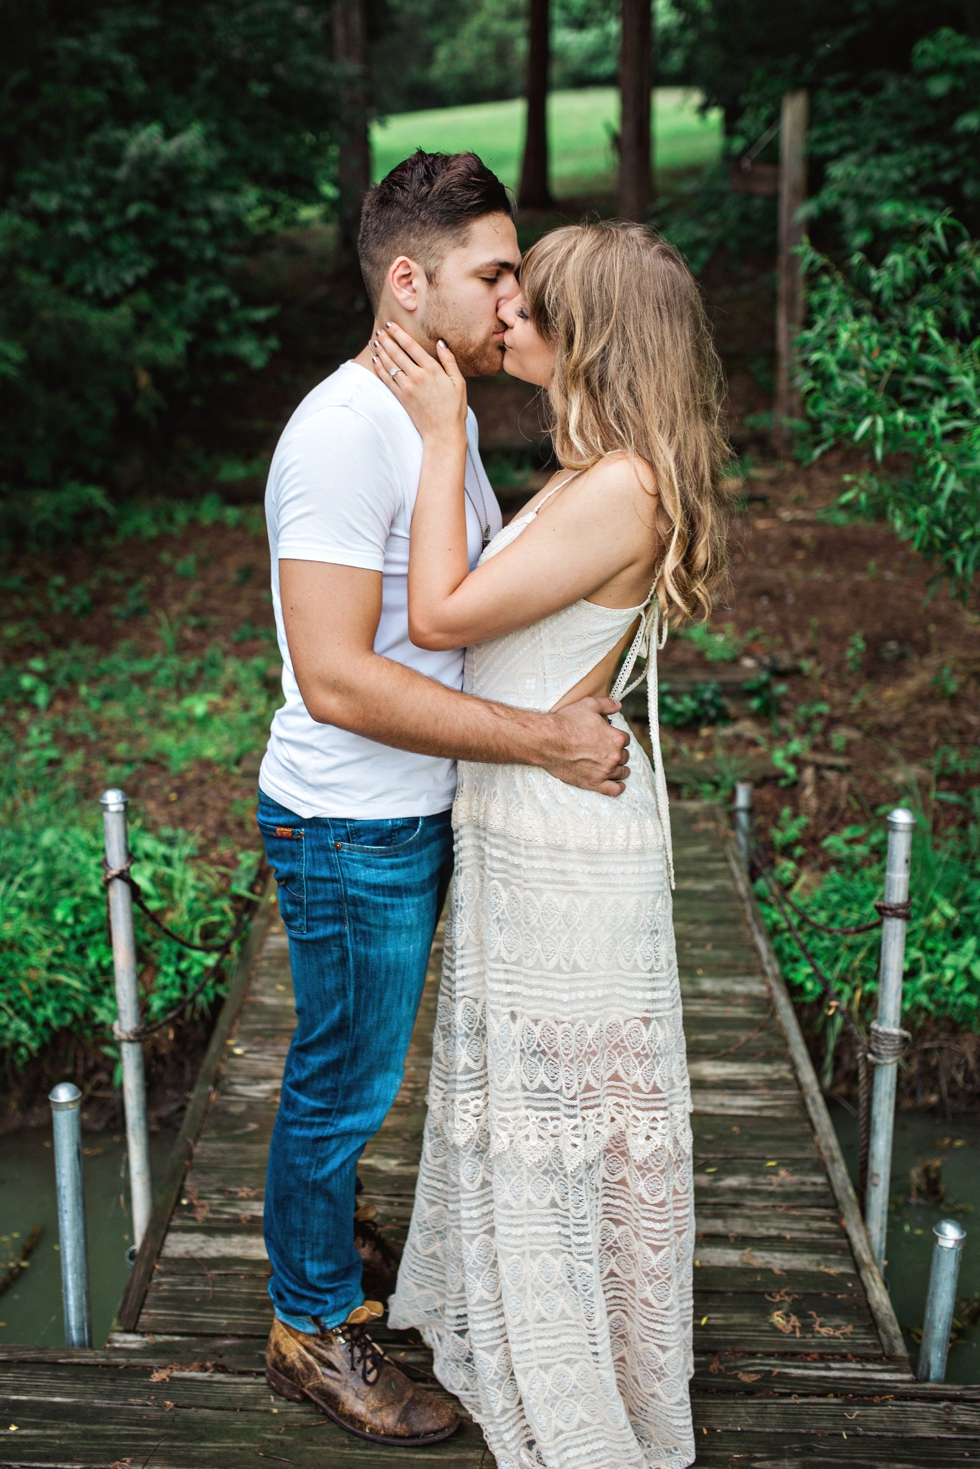 Cedarwood Wedding Photographer | Historic Cedarwood Engagement Session in Nashville